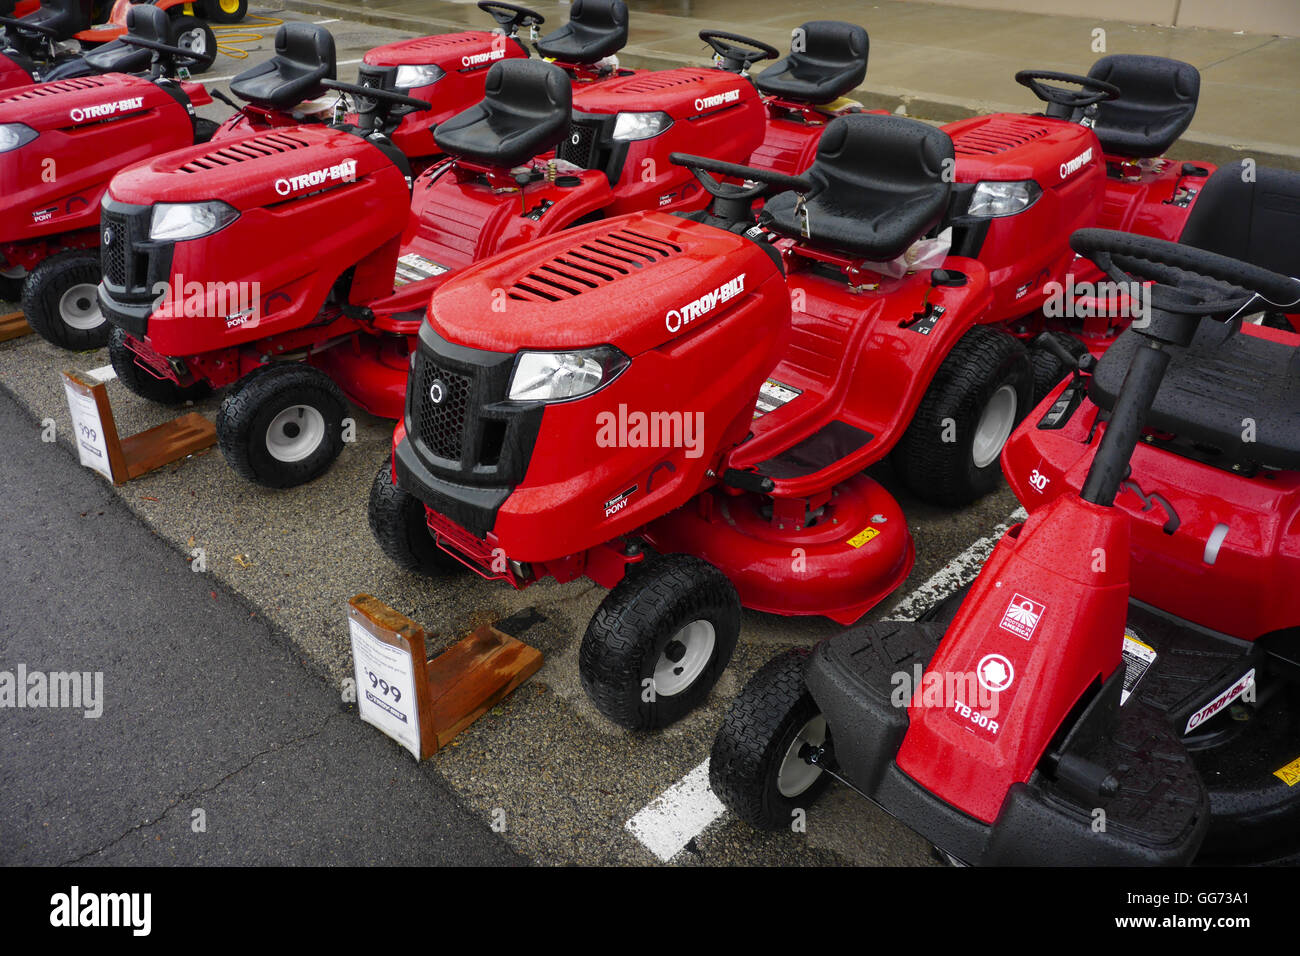 Riding Lawn Mowers High Resolution Stock Photography And Images Alamy